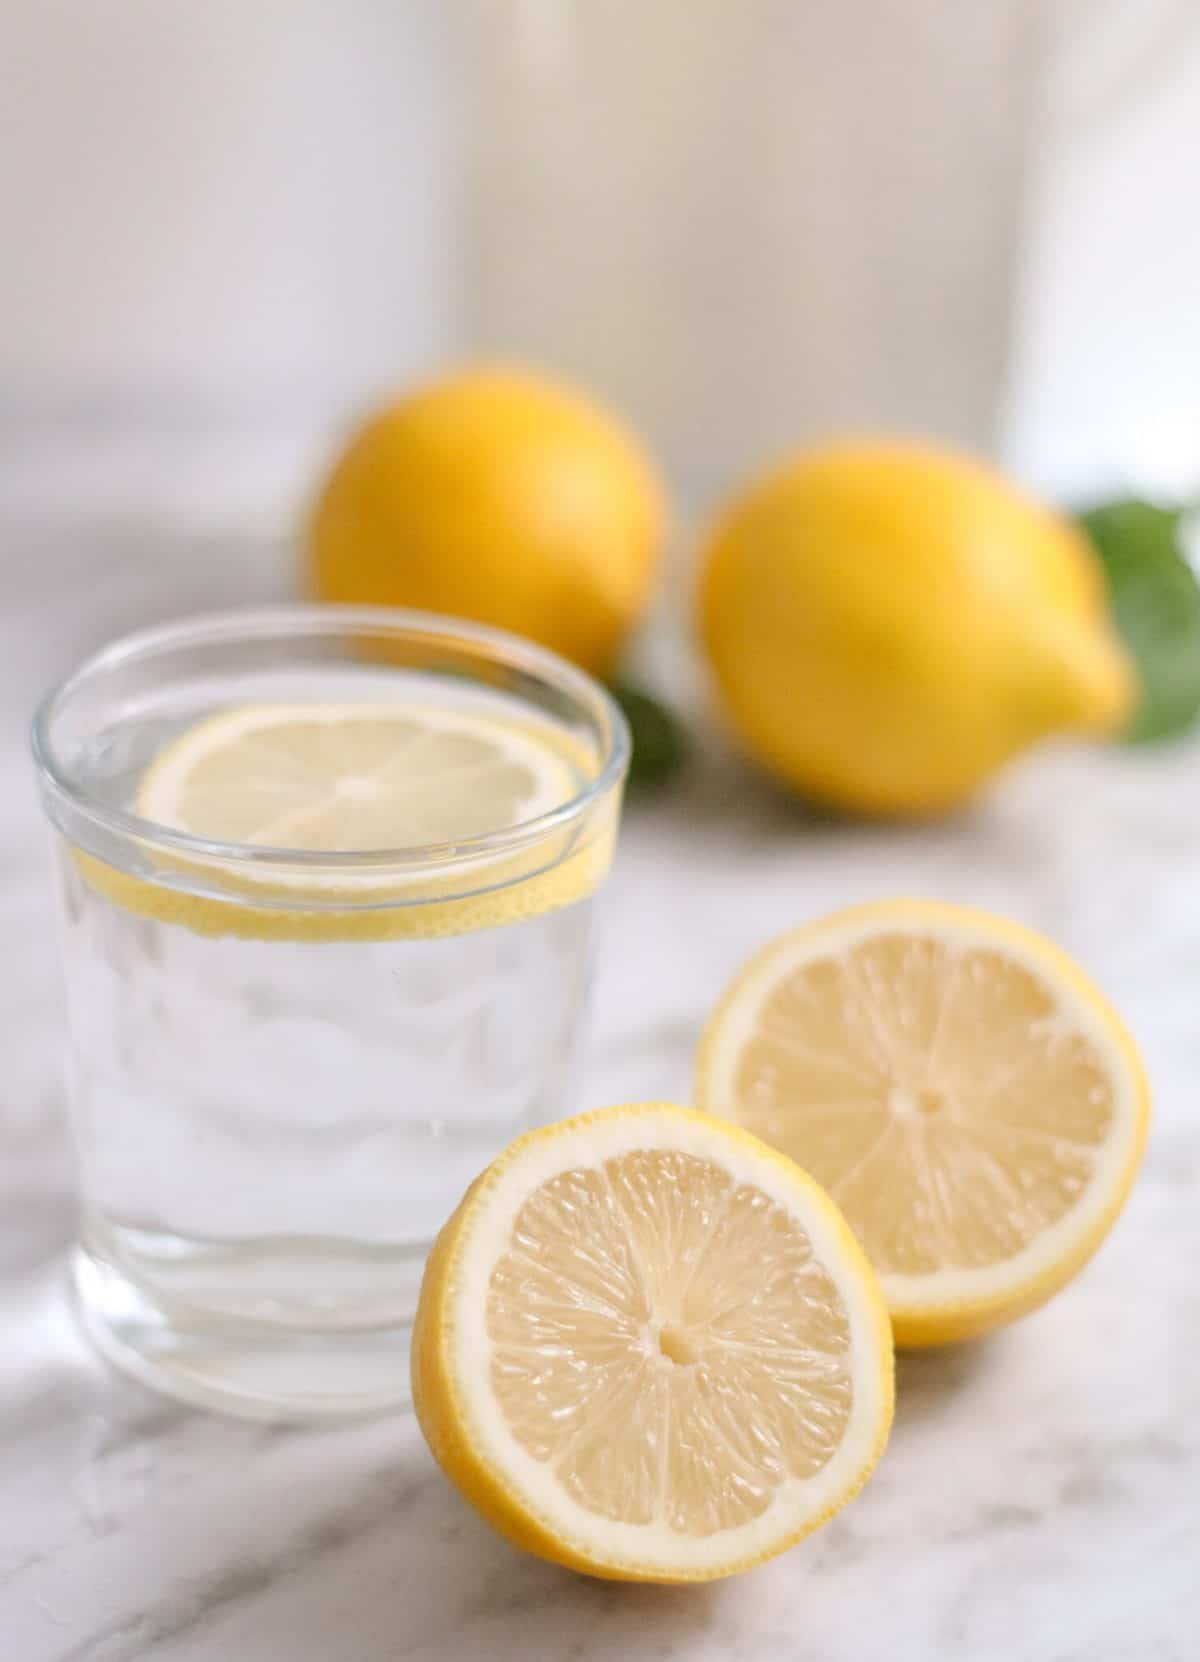 Lemon water with a sliced lemon and two halves of a lemon on the side.